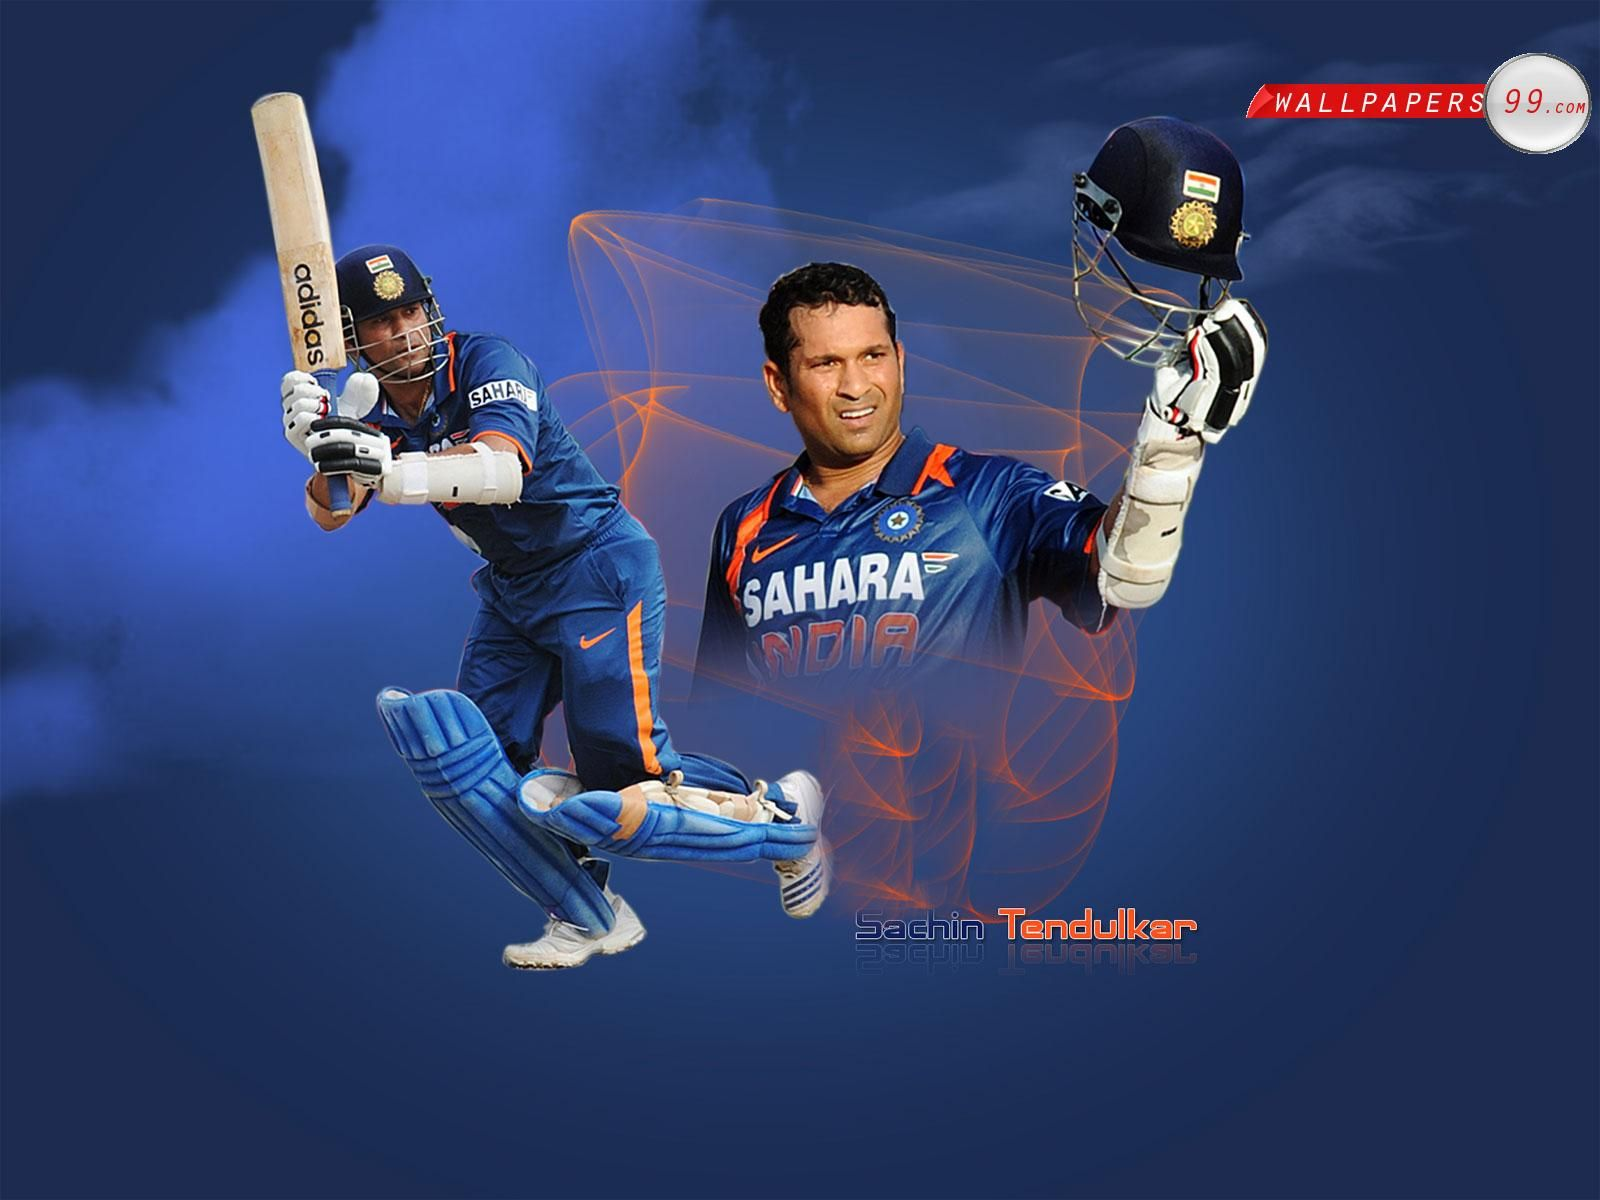 sachin tendulkar batting full hd images | hd wallpaper | pinterest